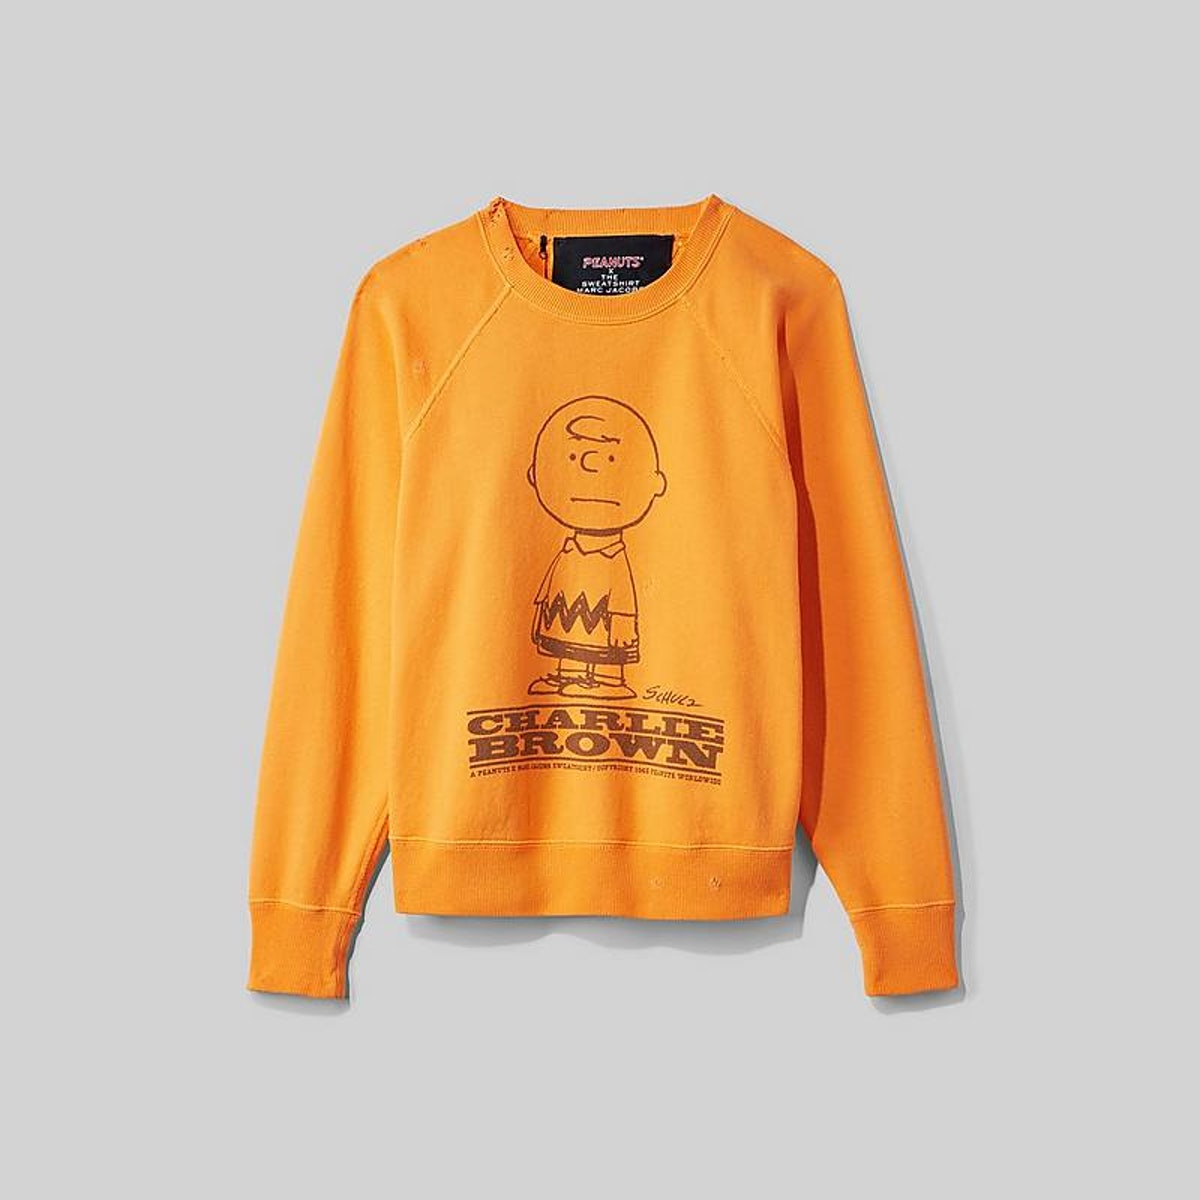 Peanuts x Marc Jacobs The Sweatshirt With Charlie Brown